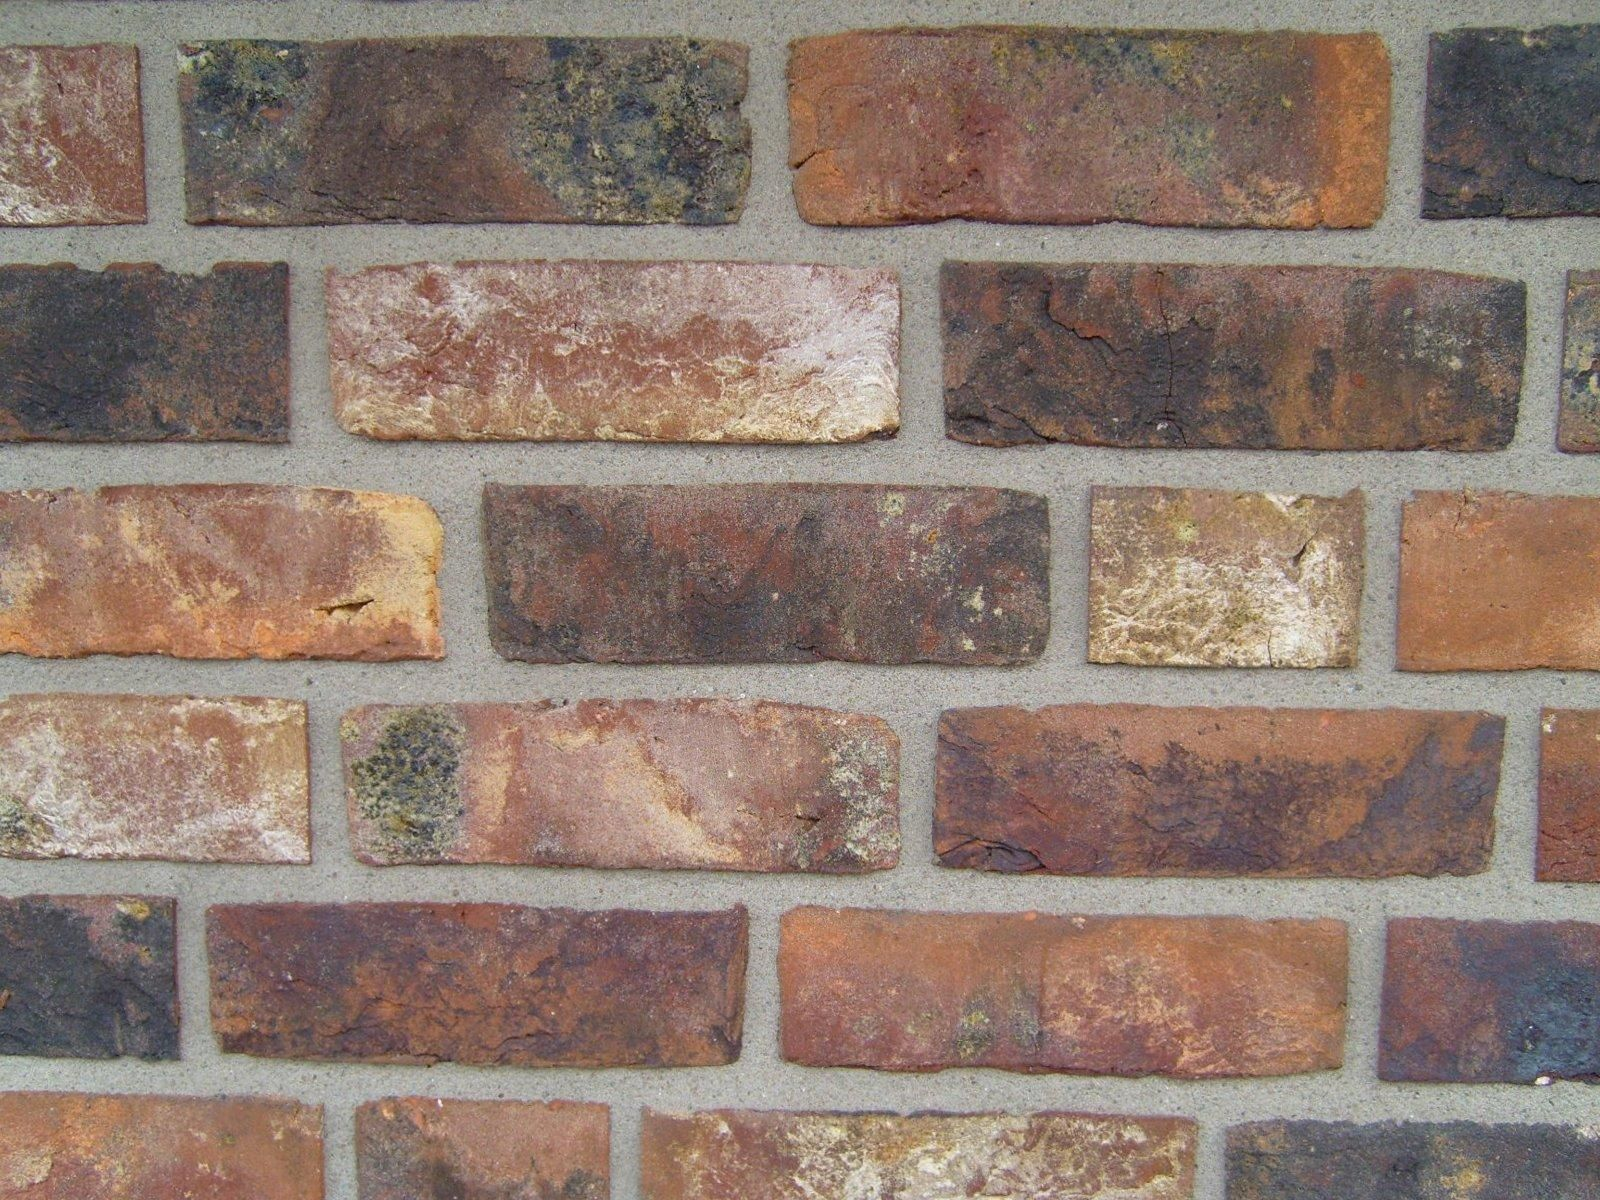 Decorative Brick Wall Best Decorative Wall Brick Images   Home Decorating  Ideas And